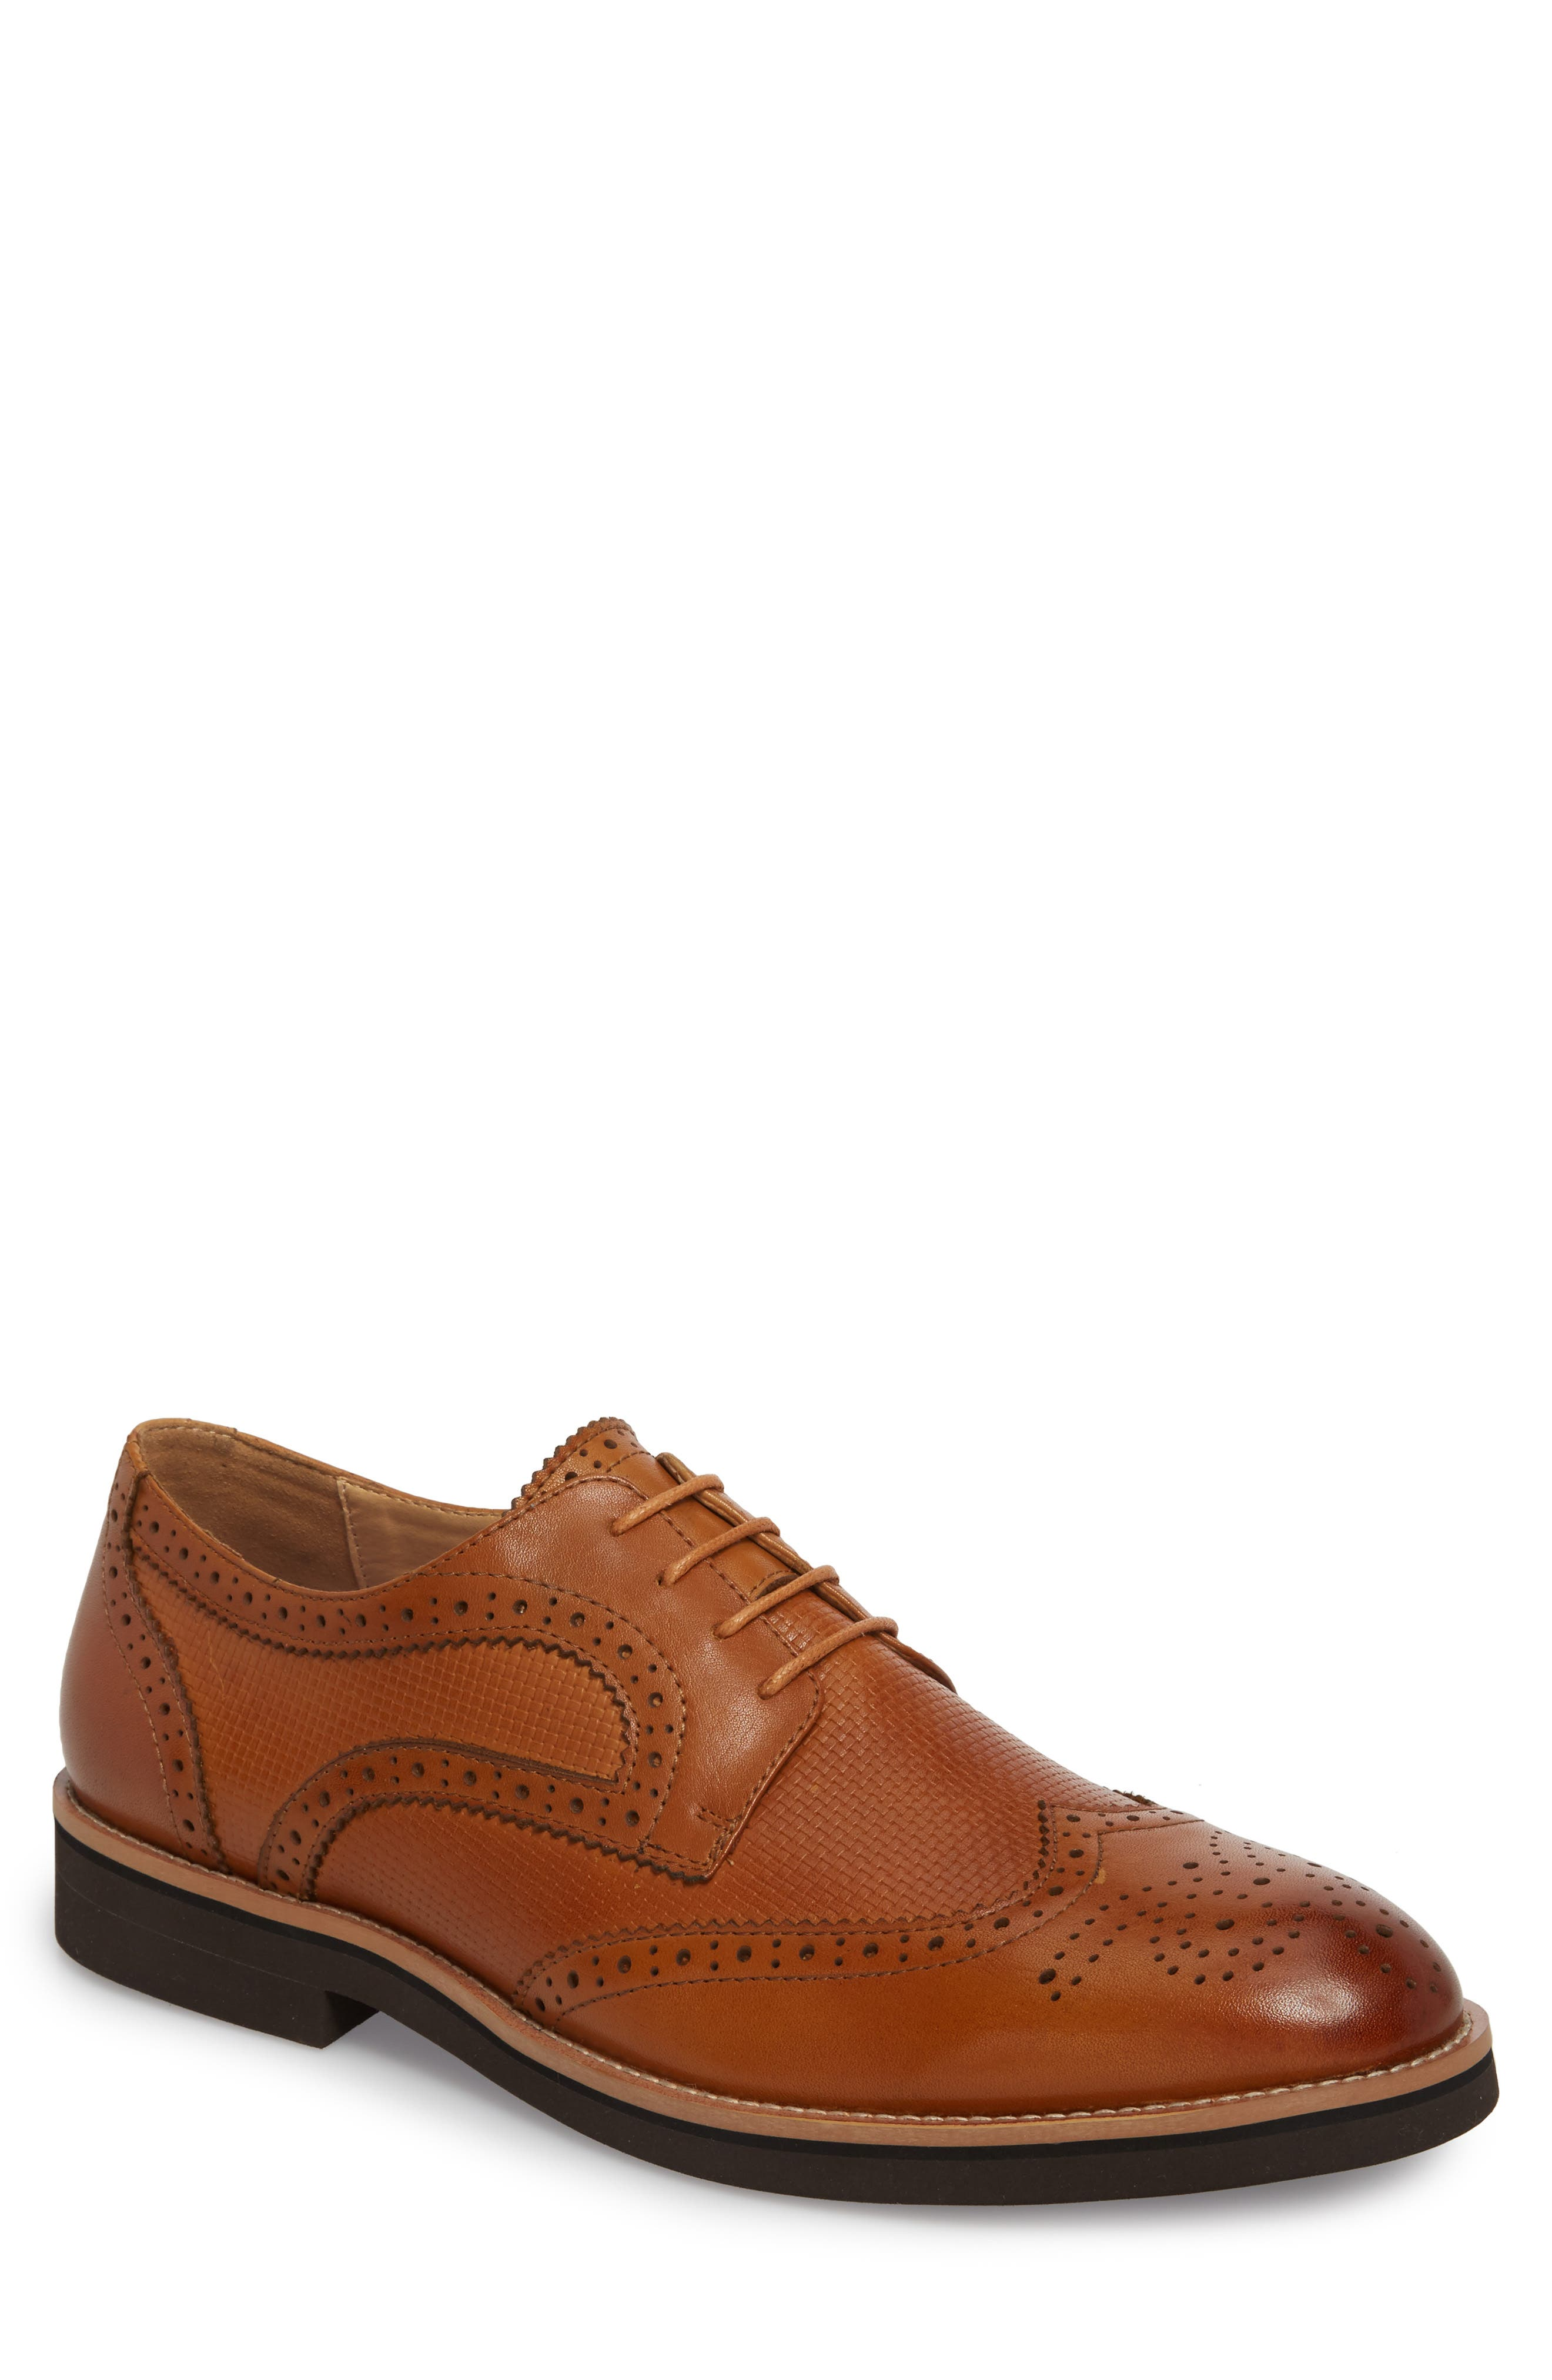 Cleave Embossed Wingtip,                         Main,                         color, Cognac Leather